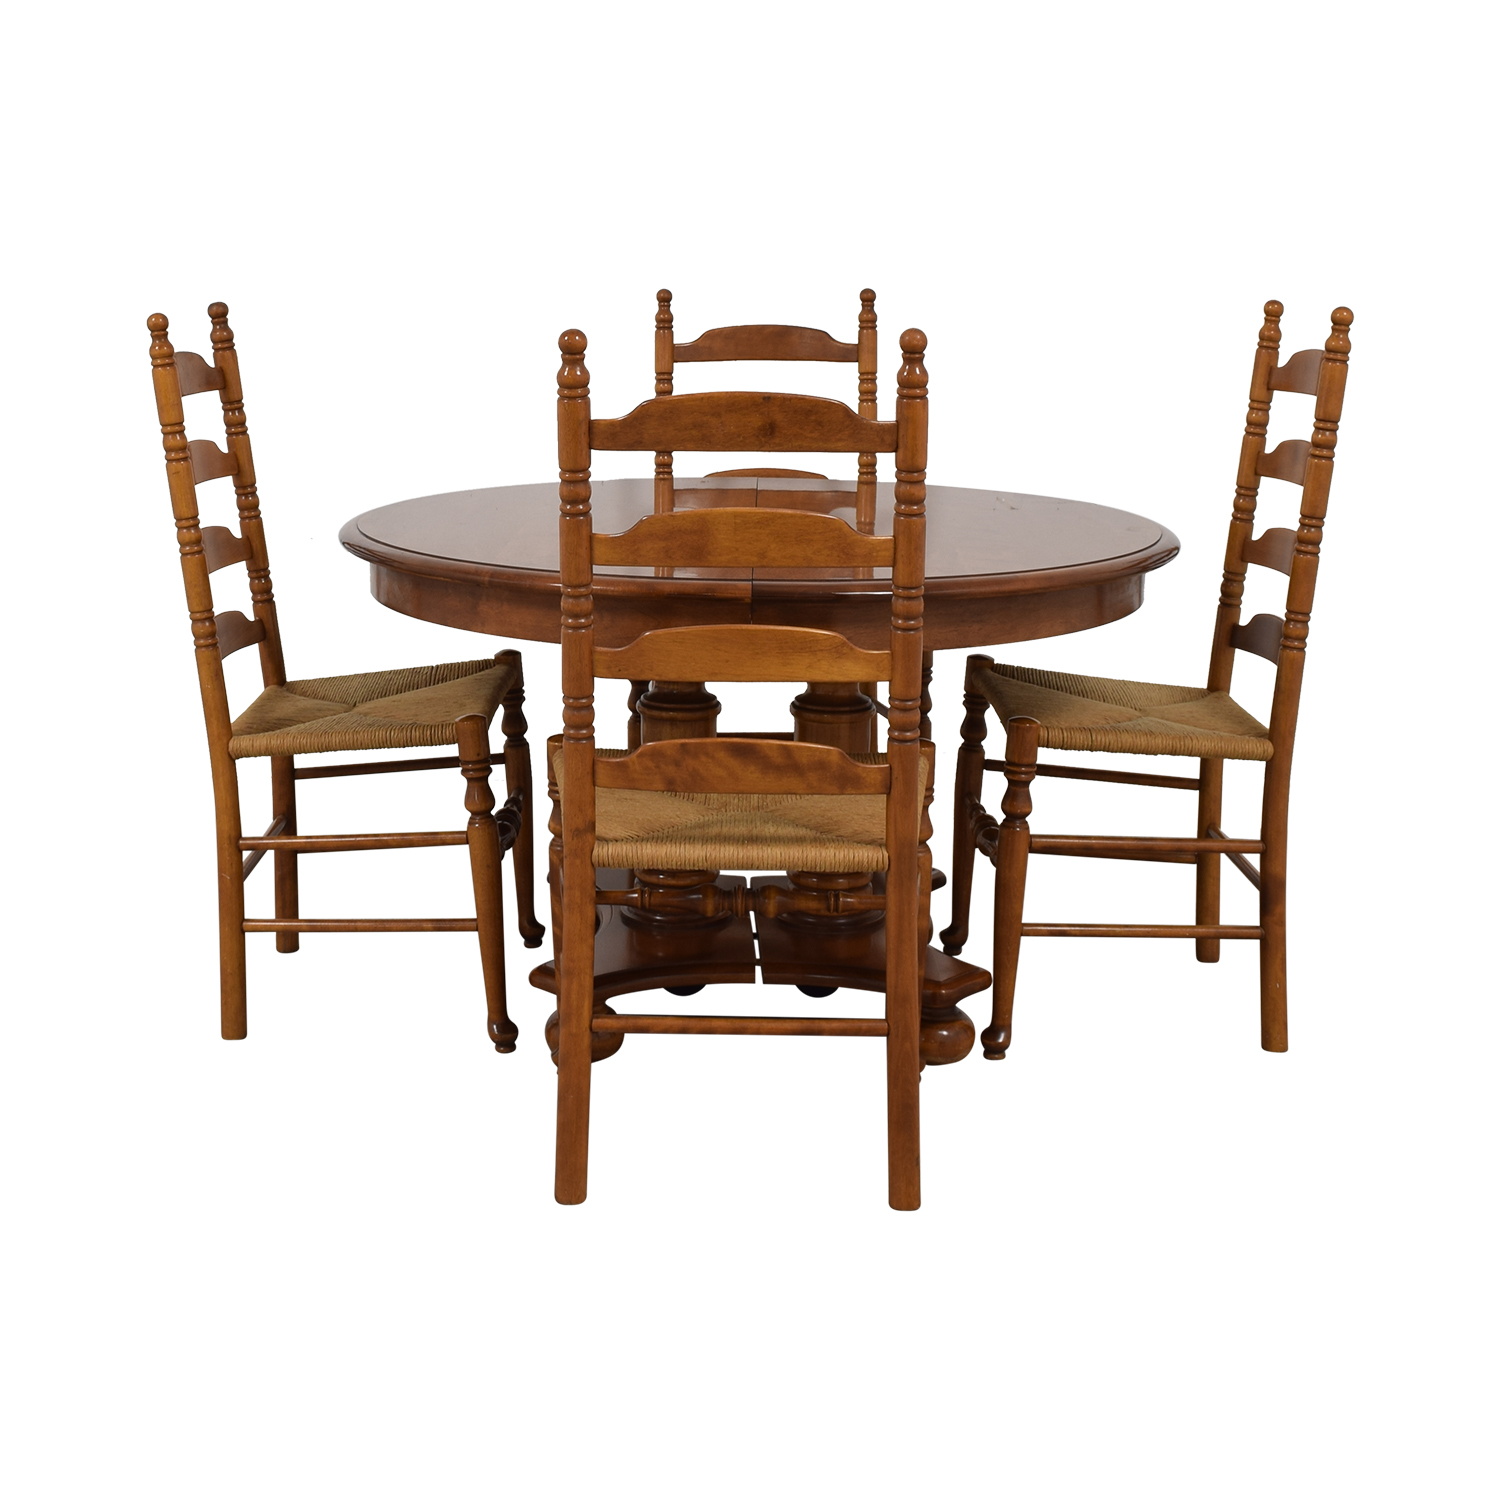 Ethan Allen Ethan Allen Extendable Wood Pedestal Dining Set on sale